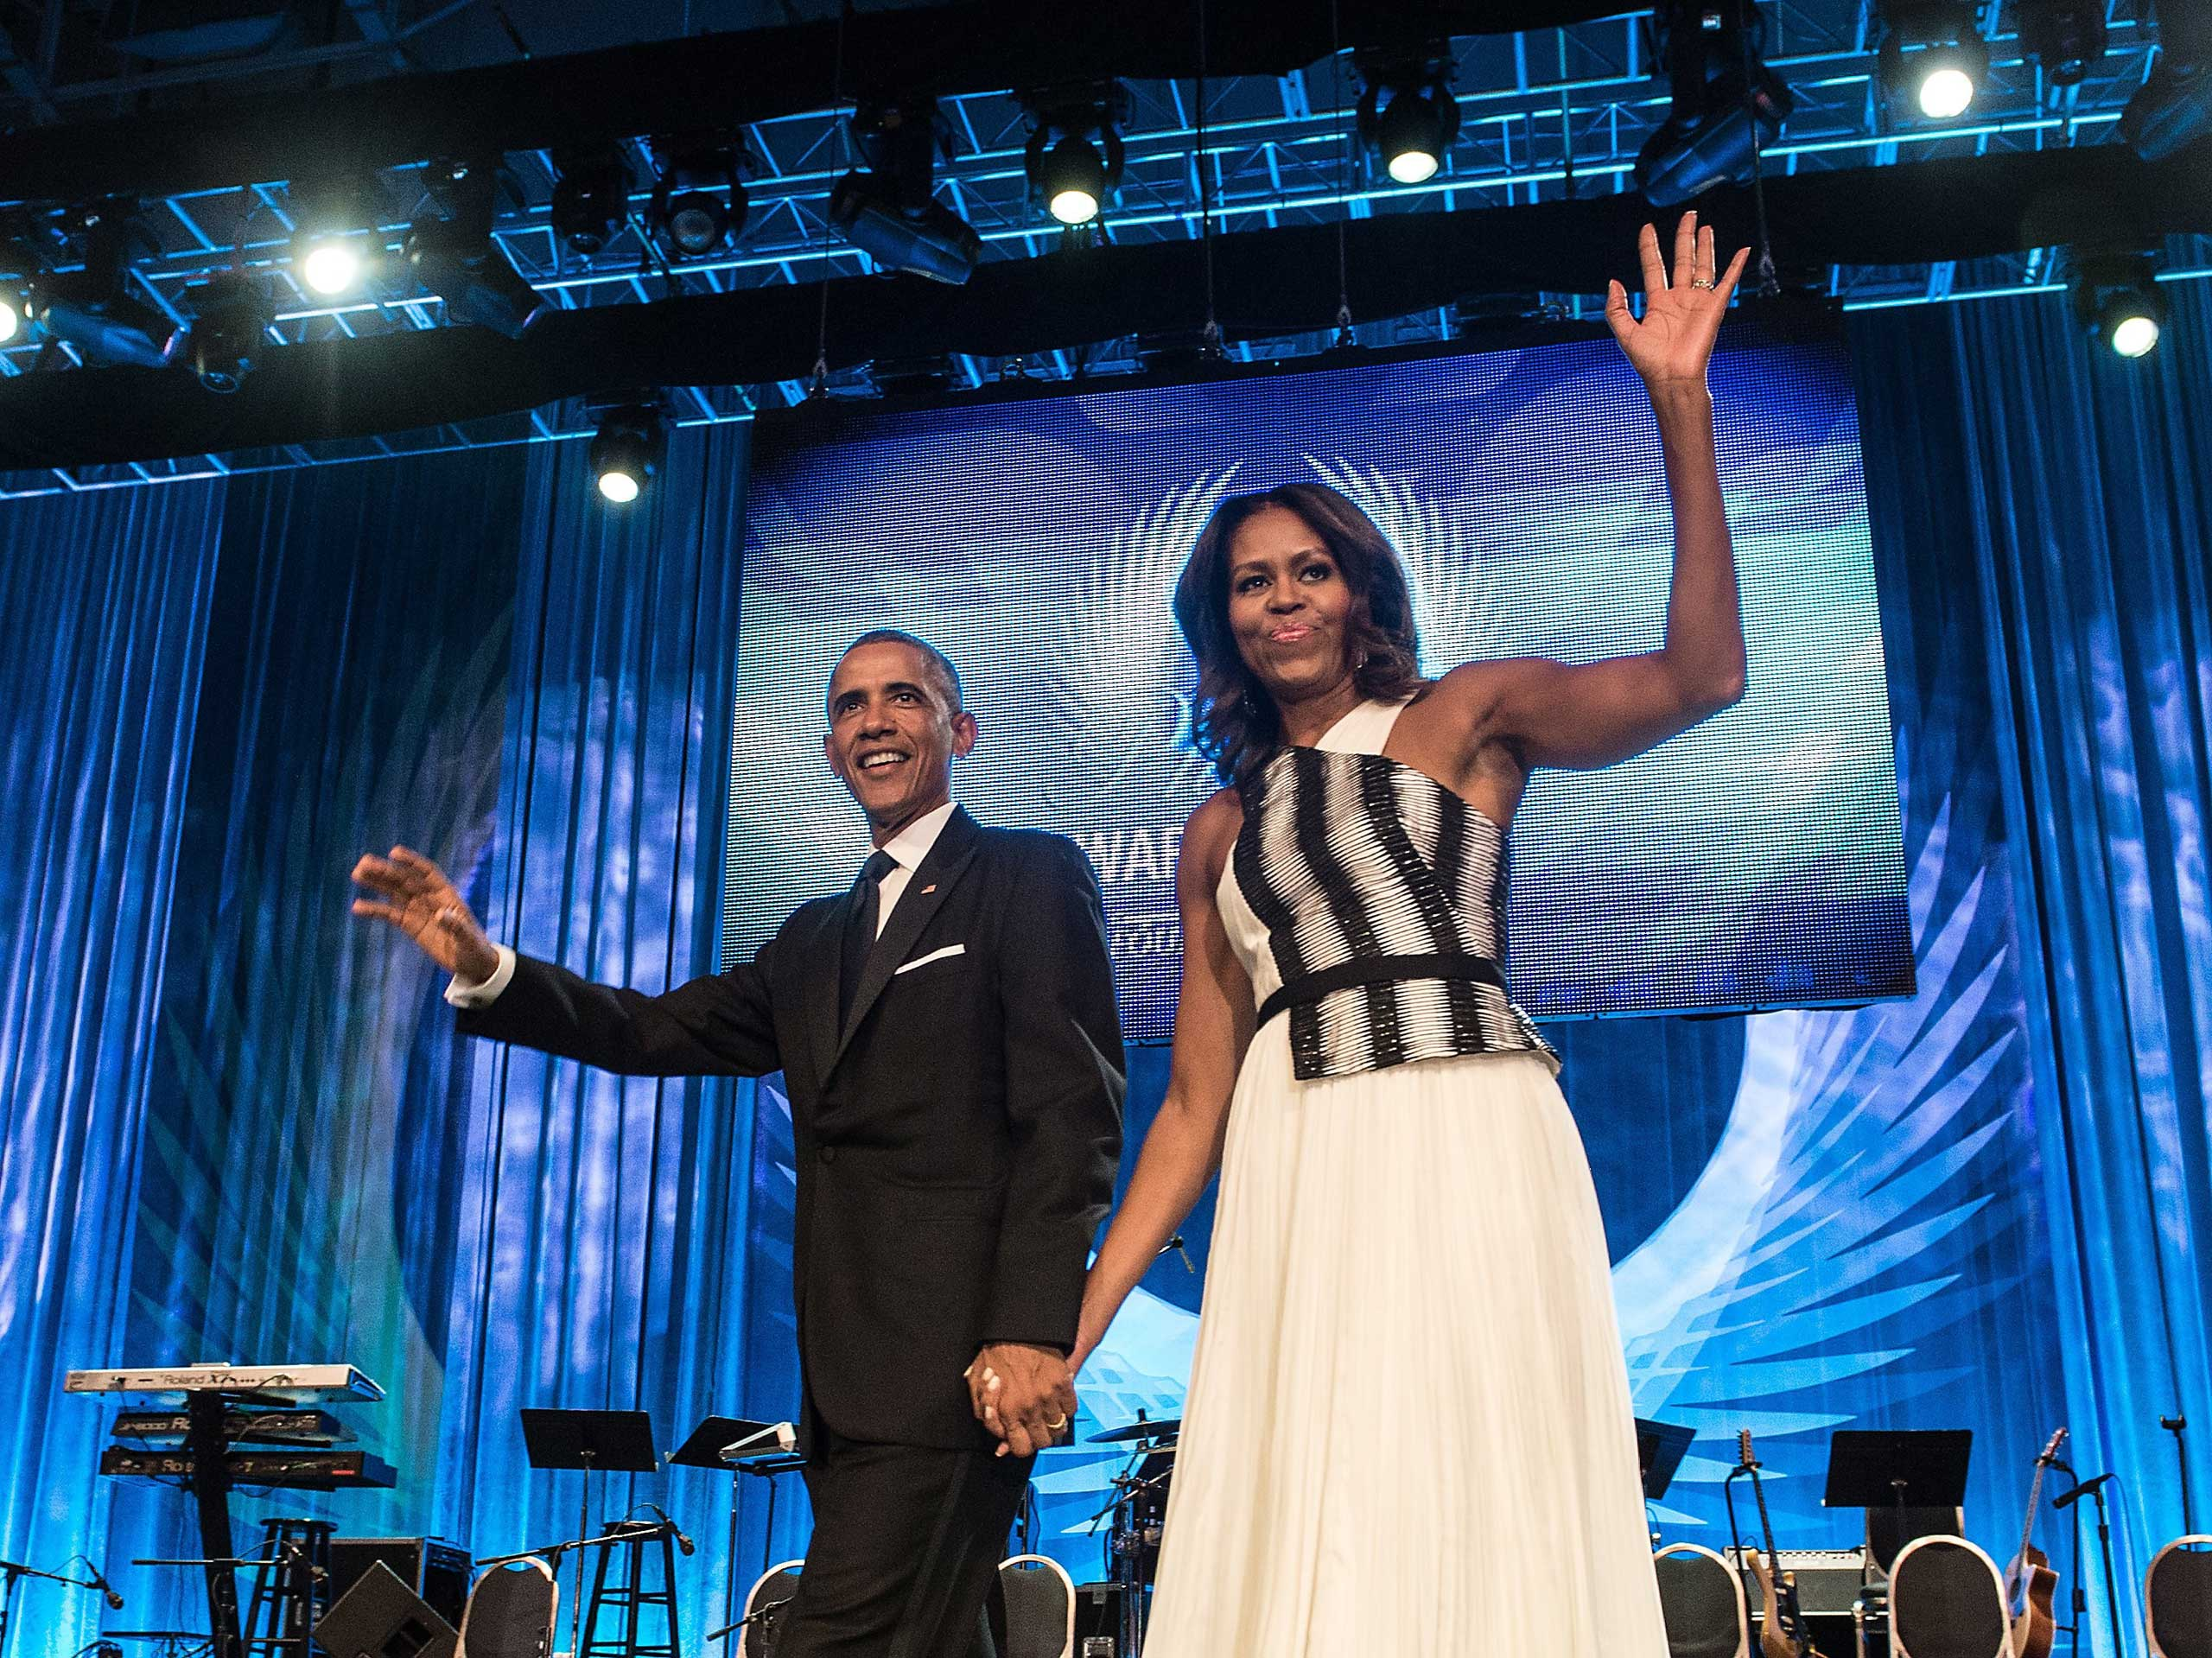 At an awards dinner held by the Congressional Black Caucus Foundation, Obama chose a dress from Bibhu Mohapatra's fall collection.